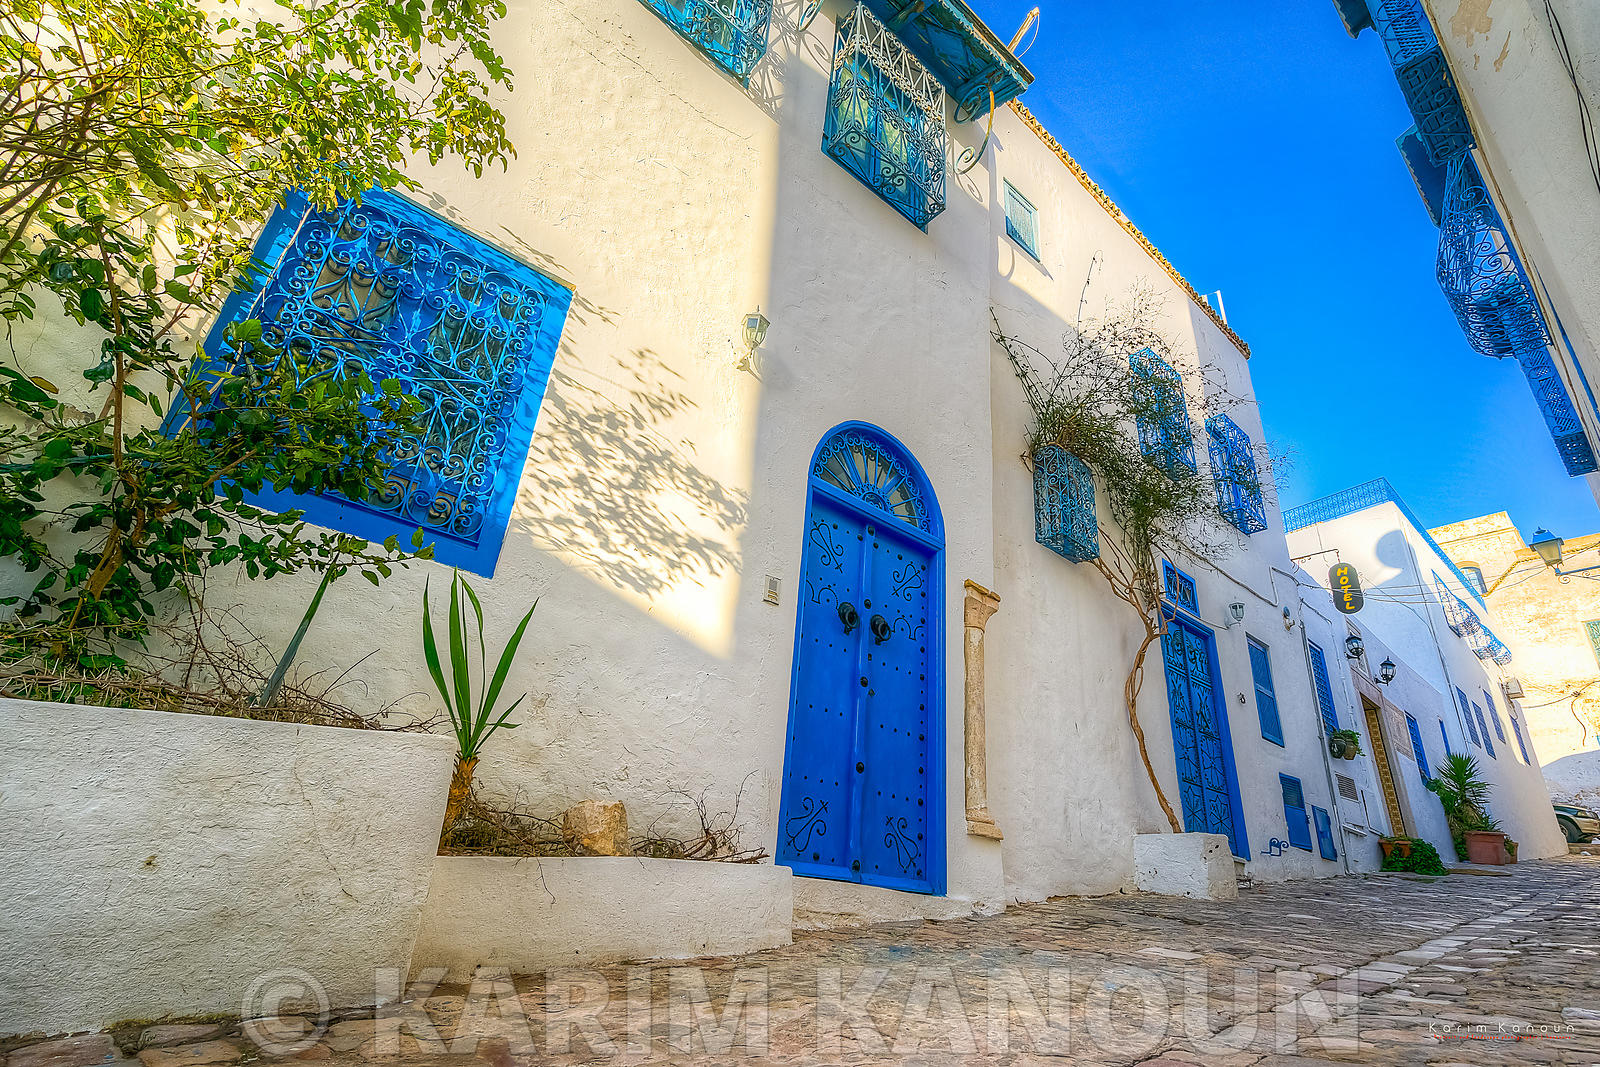 The white and blue village of Sidi Bou Said